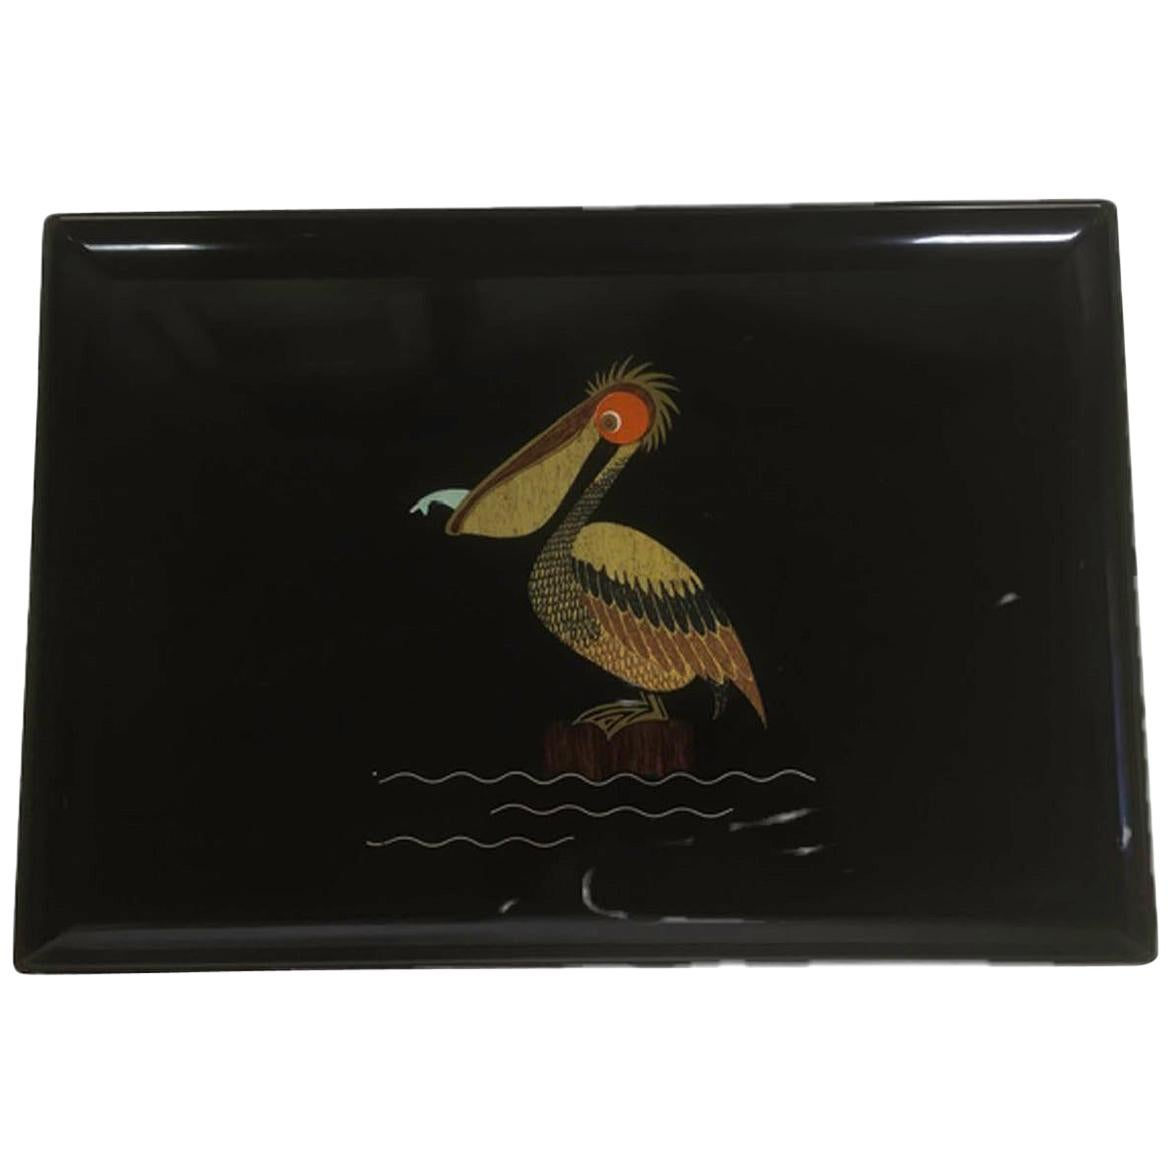 Mid 20th Century Couroc Phenolic Resin Serving Tray, Wood and Metal Pelican